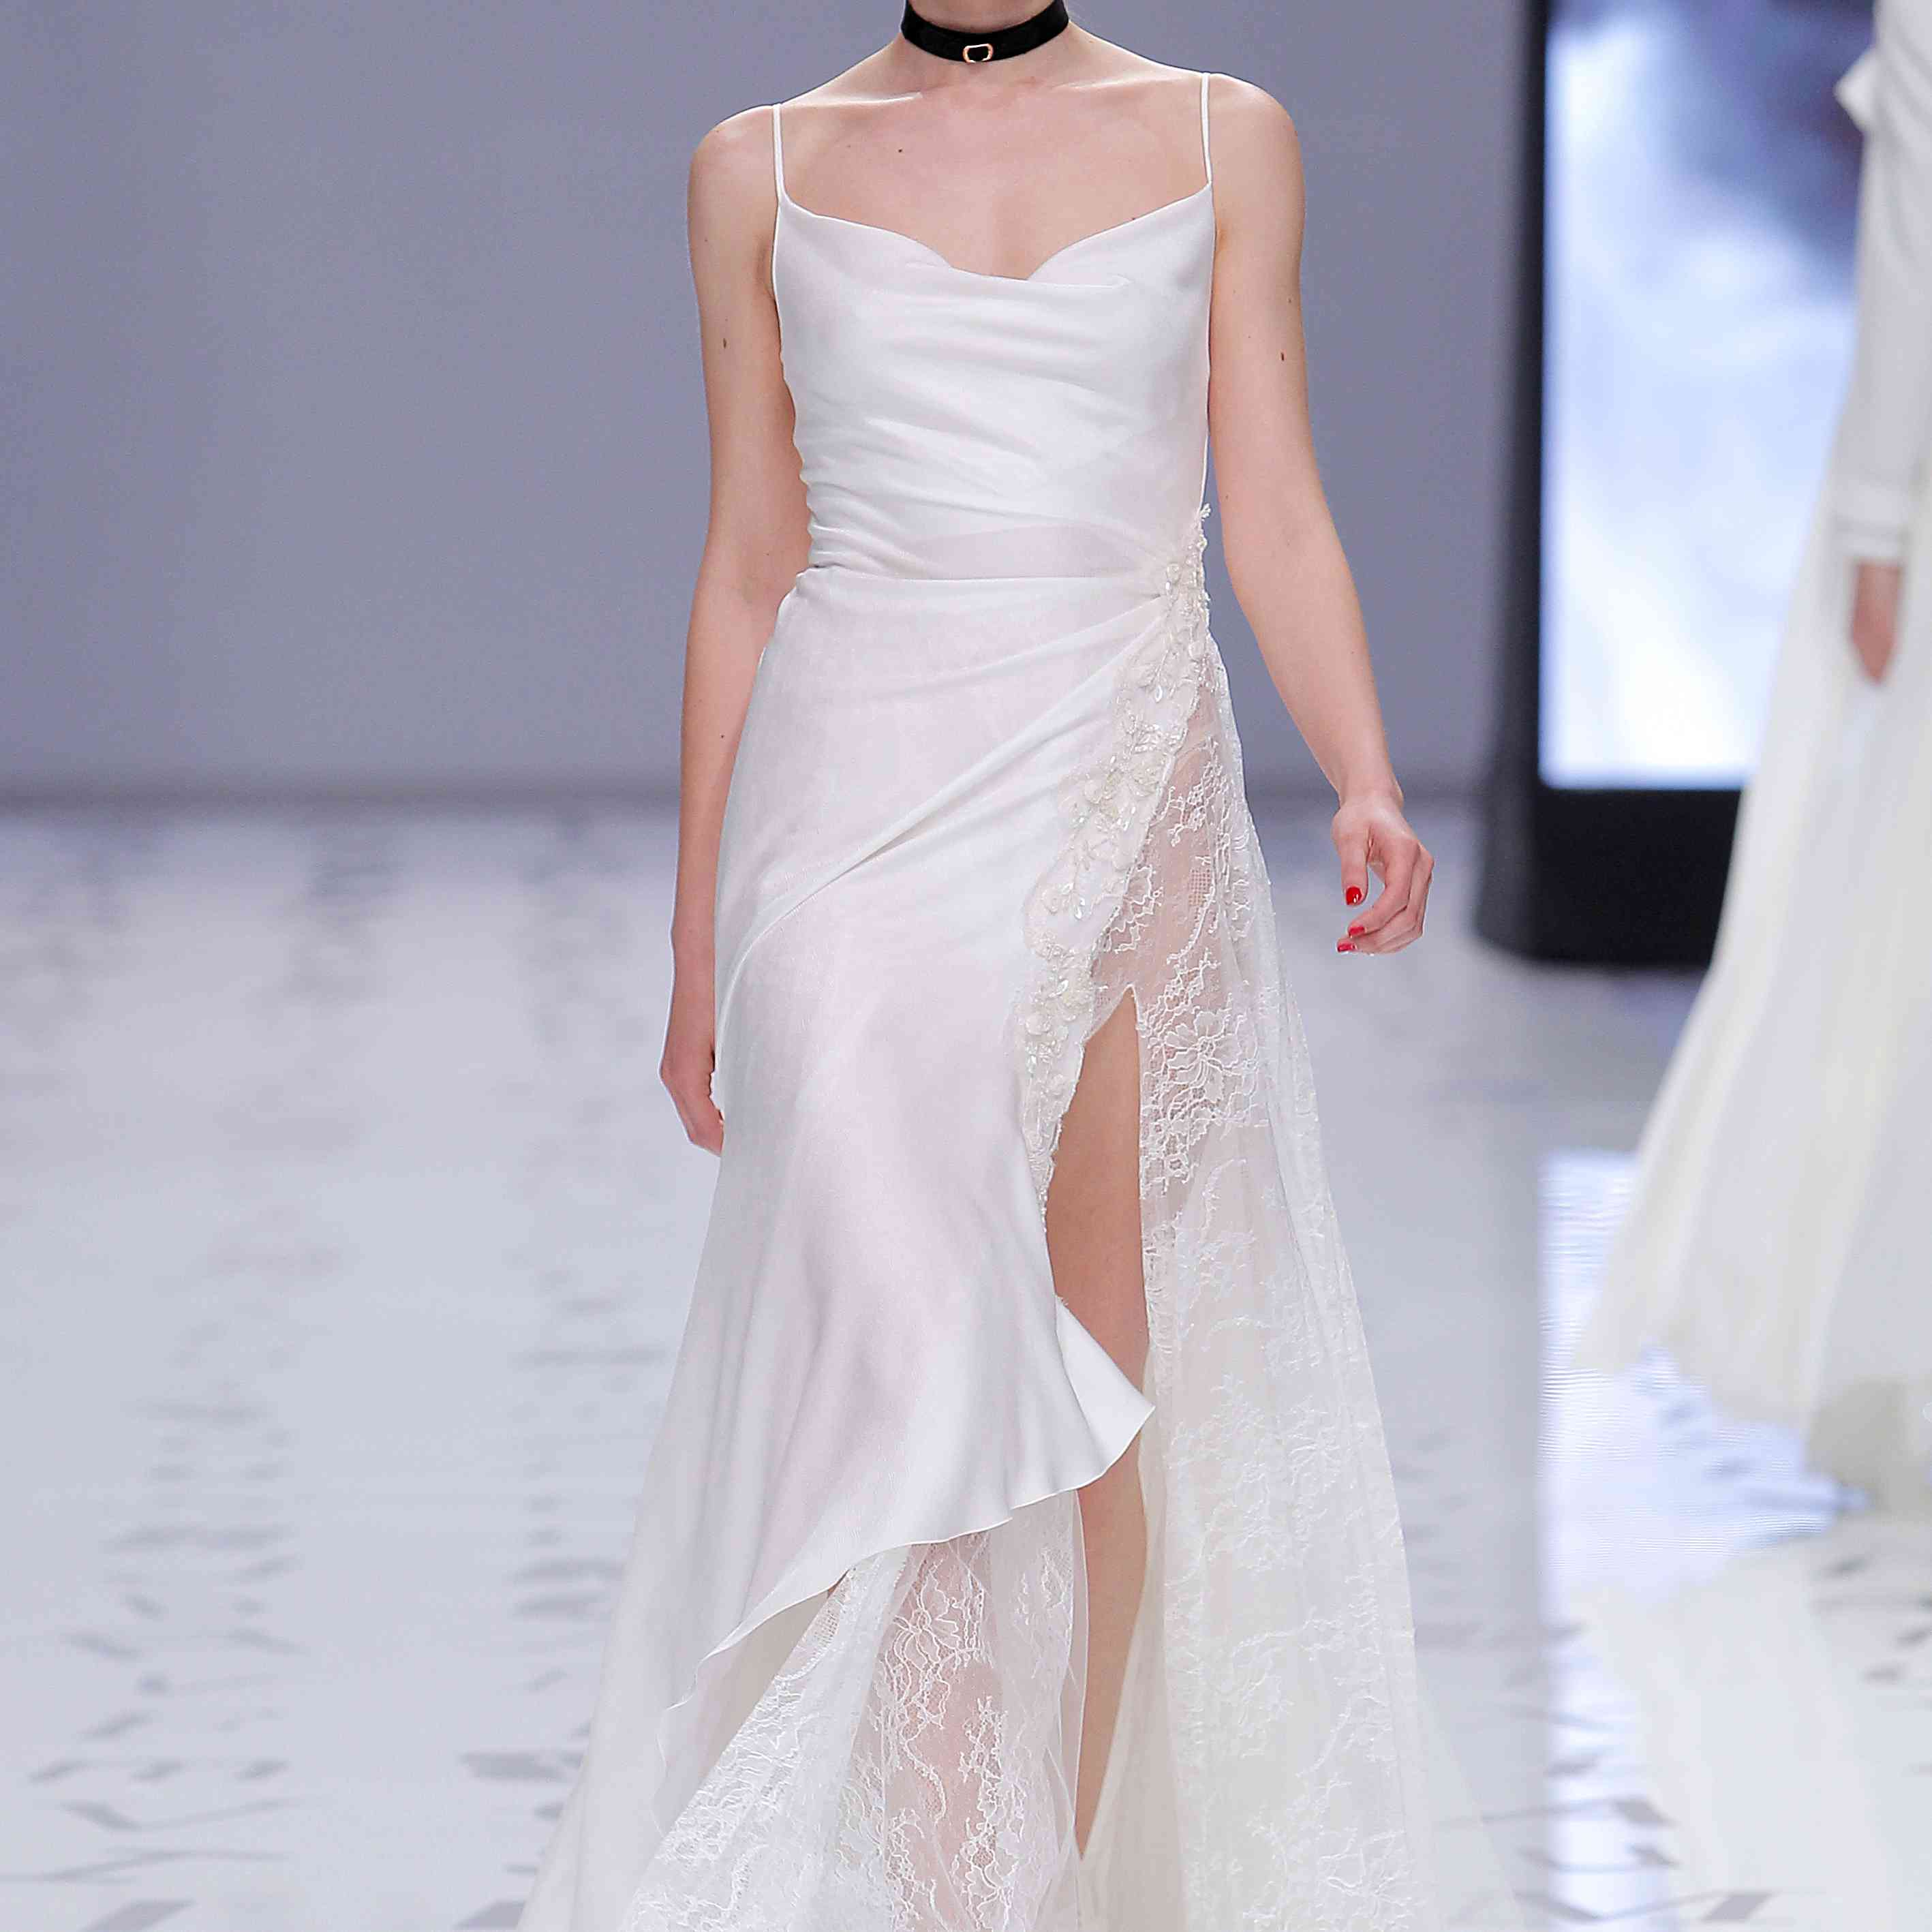 Model in satin A-line dress with spaghetti straps and a scoop neck and a half lace skirt with a high side front slit.